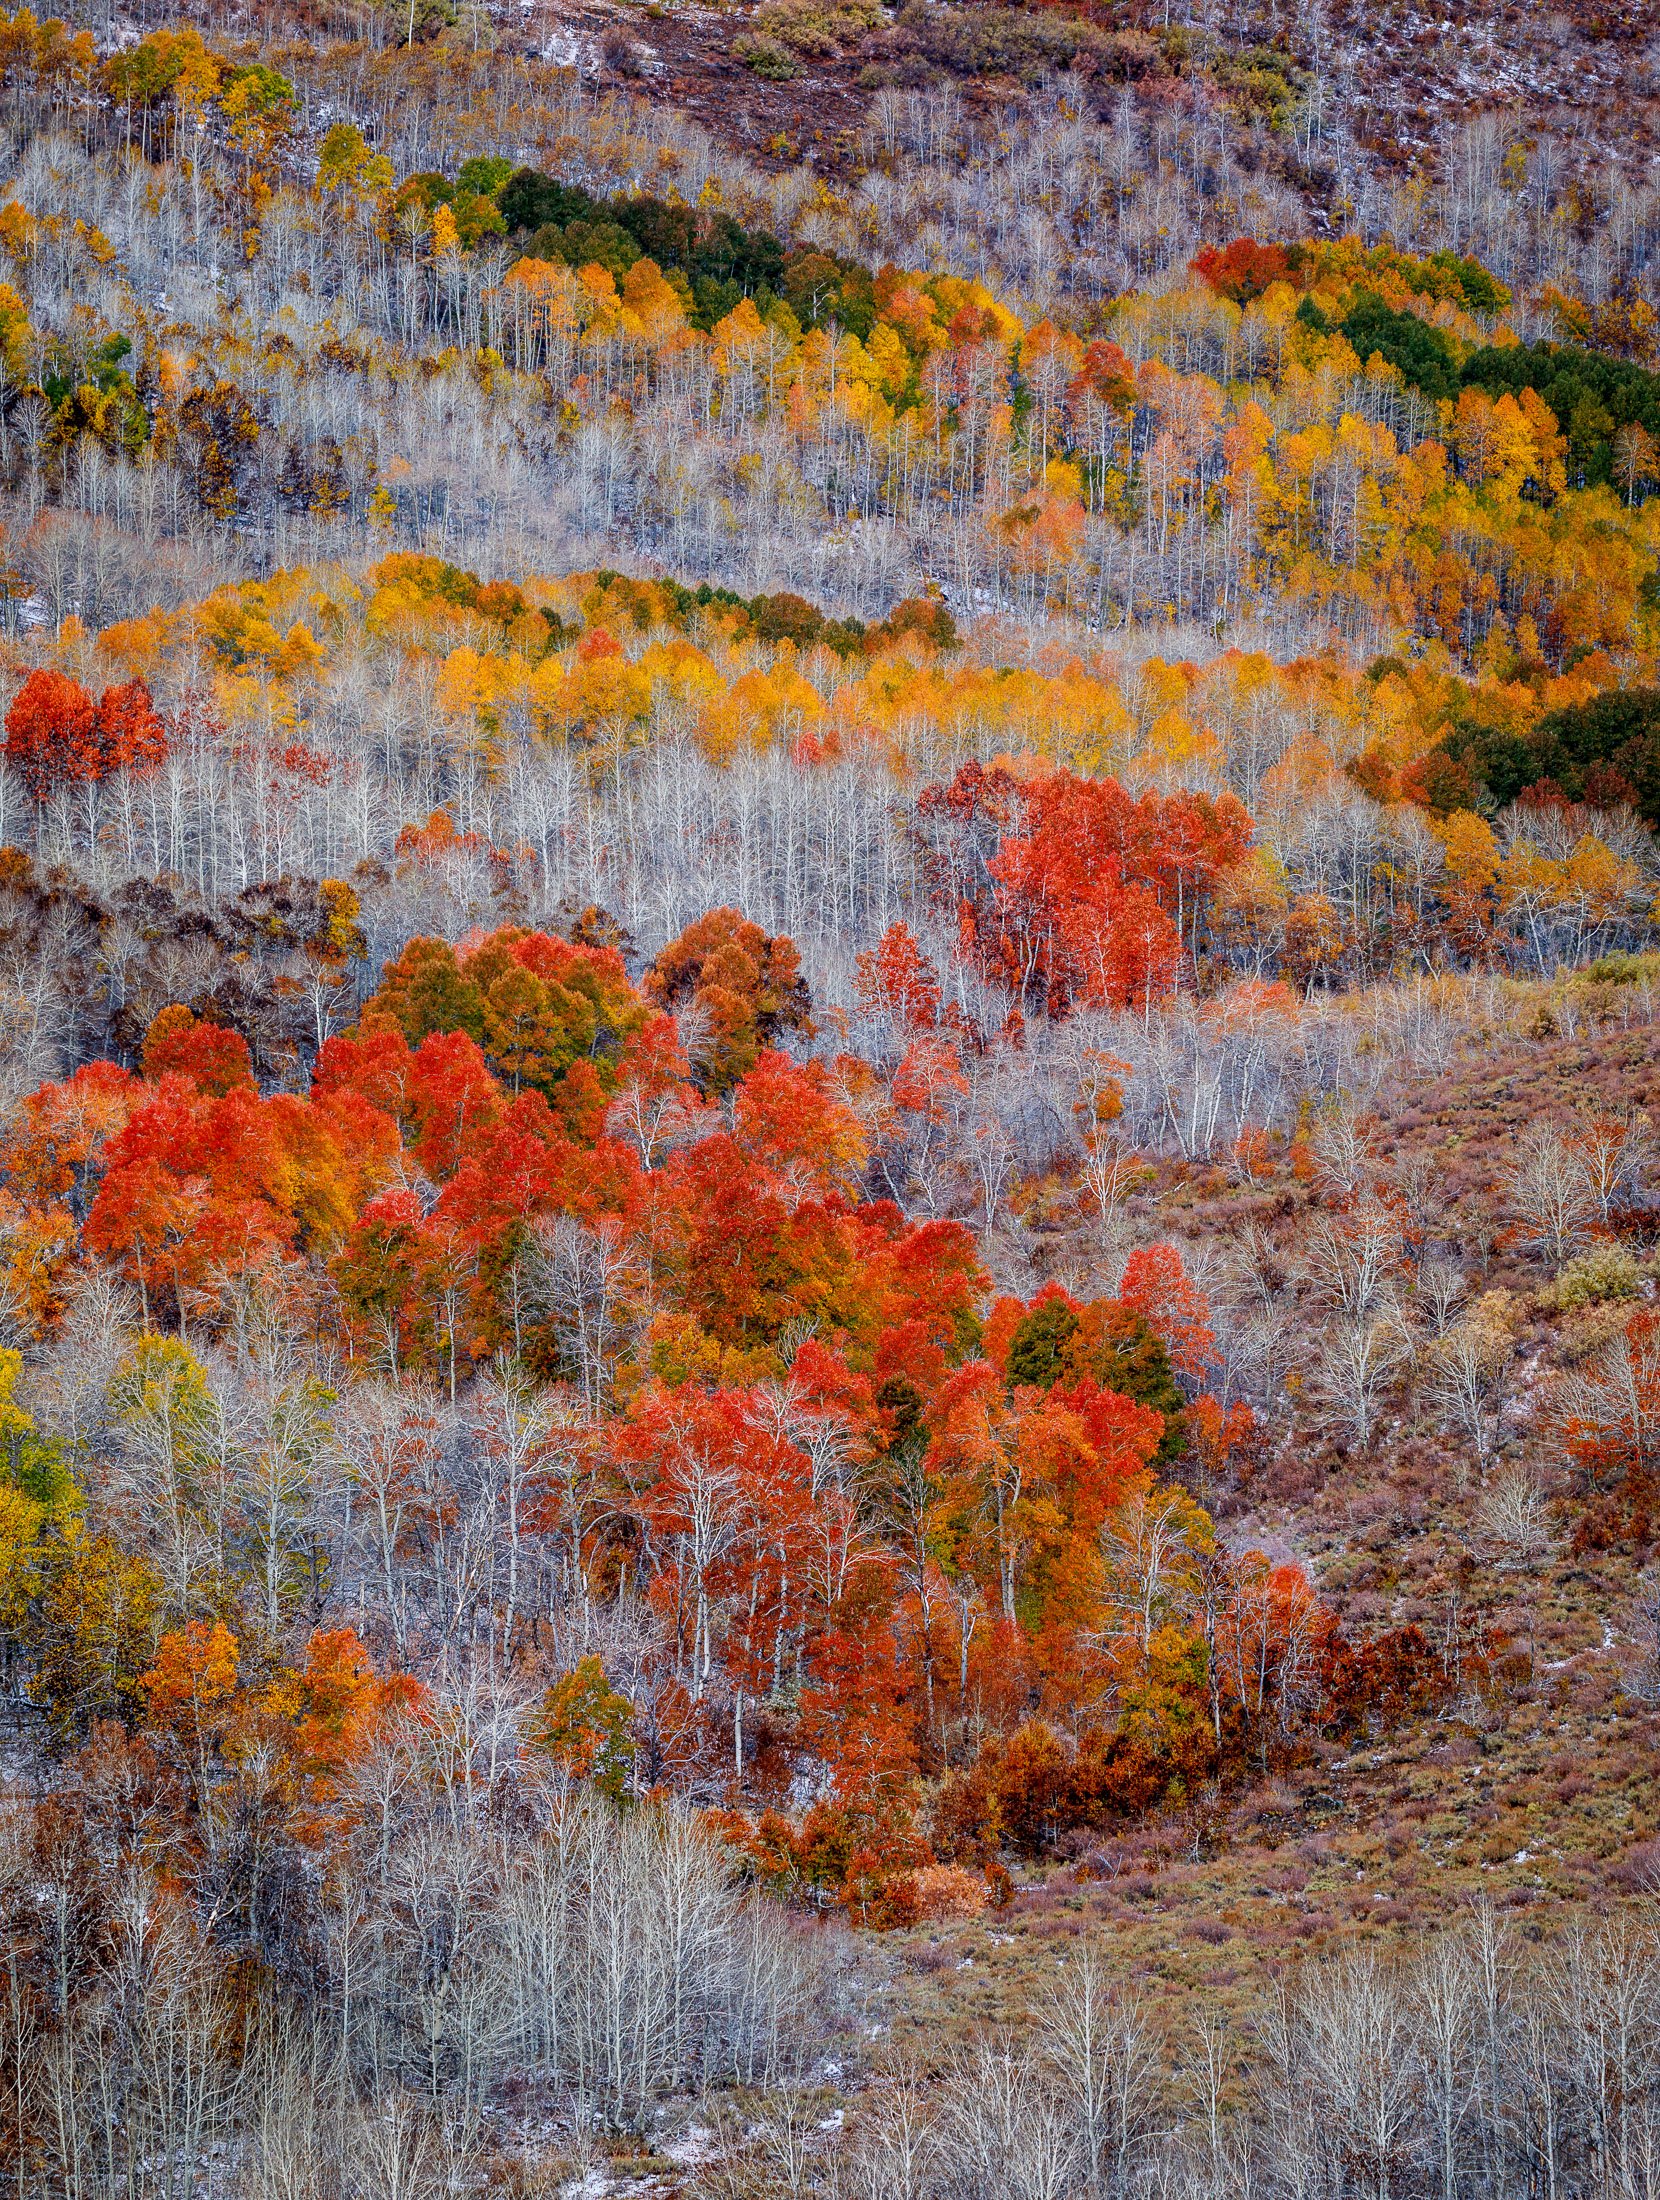 Steens Mountain's Fish Creek Autumn Color